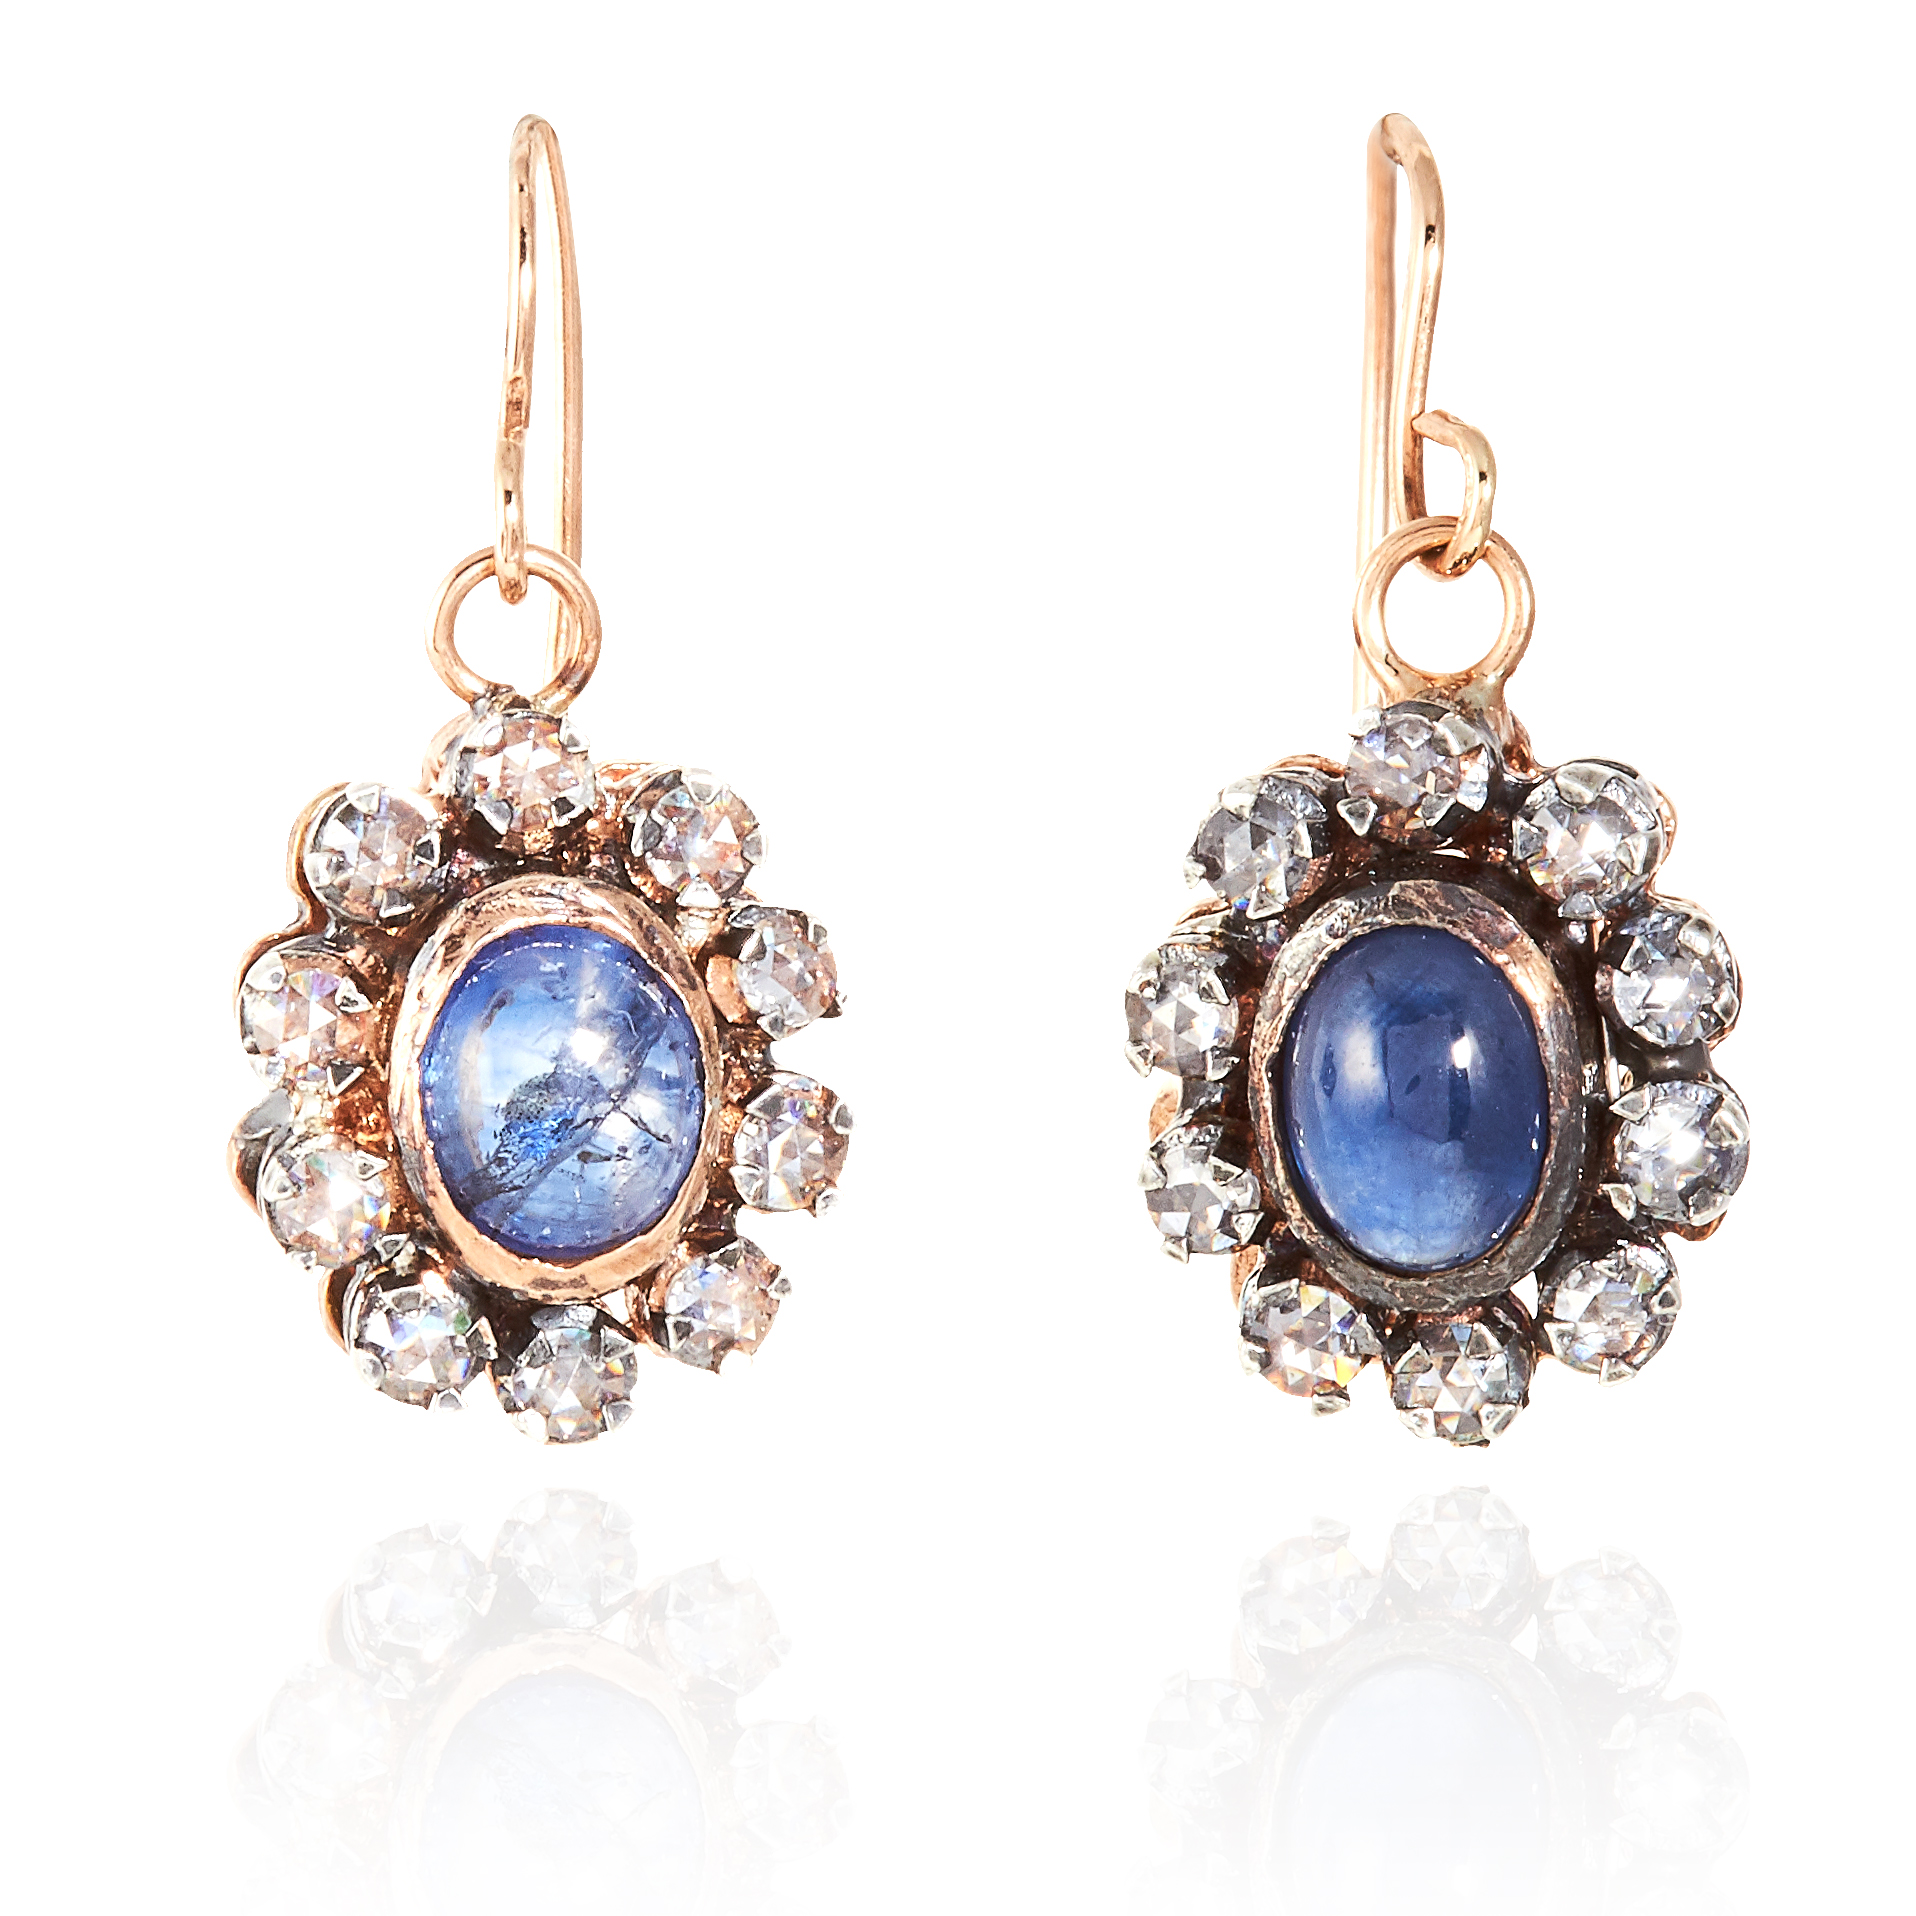 A PAIR OF ANTIQUE SAPPHIRE AND DIAMOND EARRINGS in yellow gold and silver, each with a cabochon